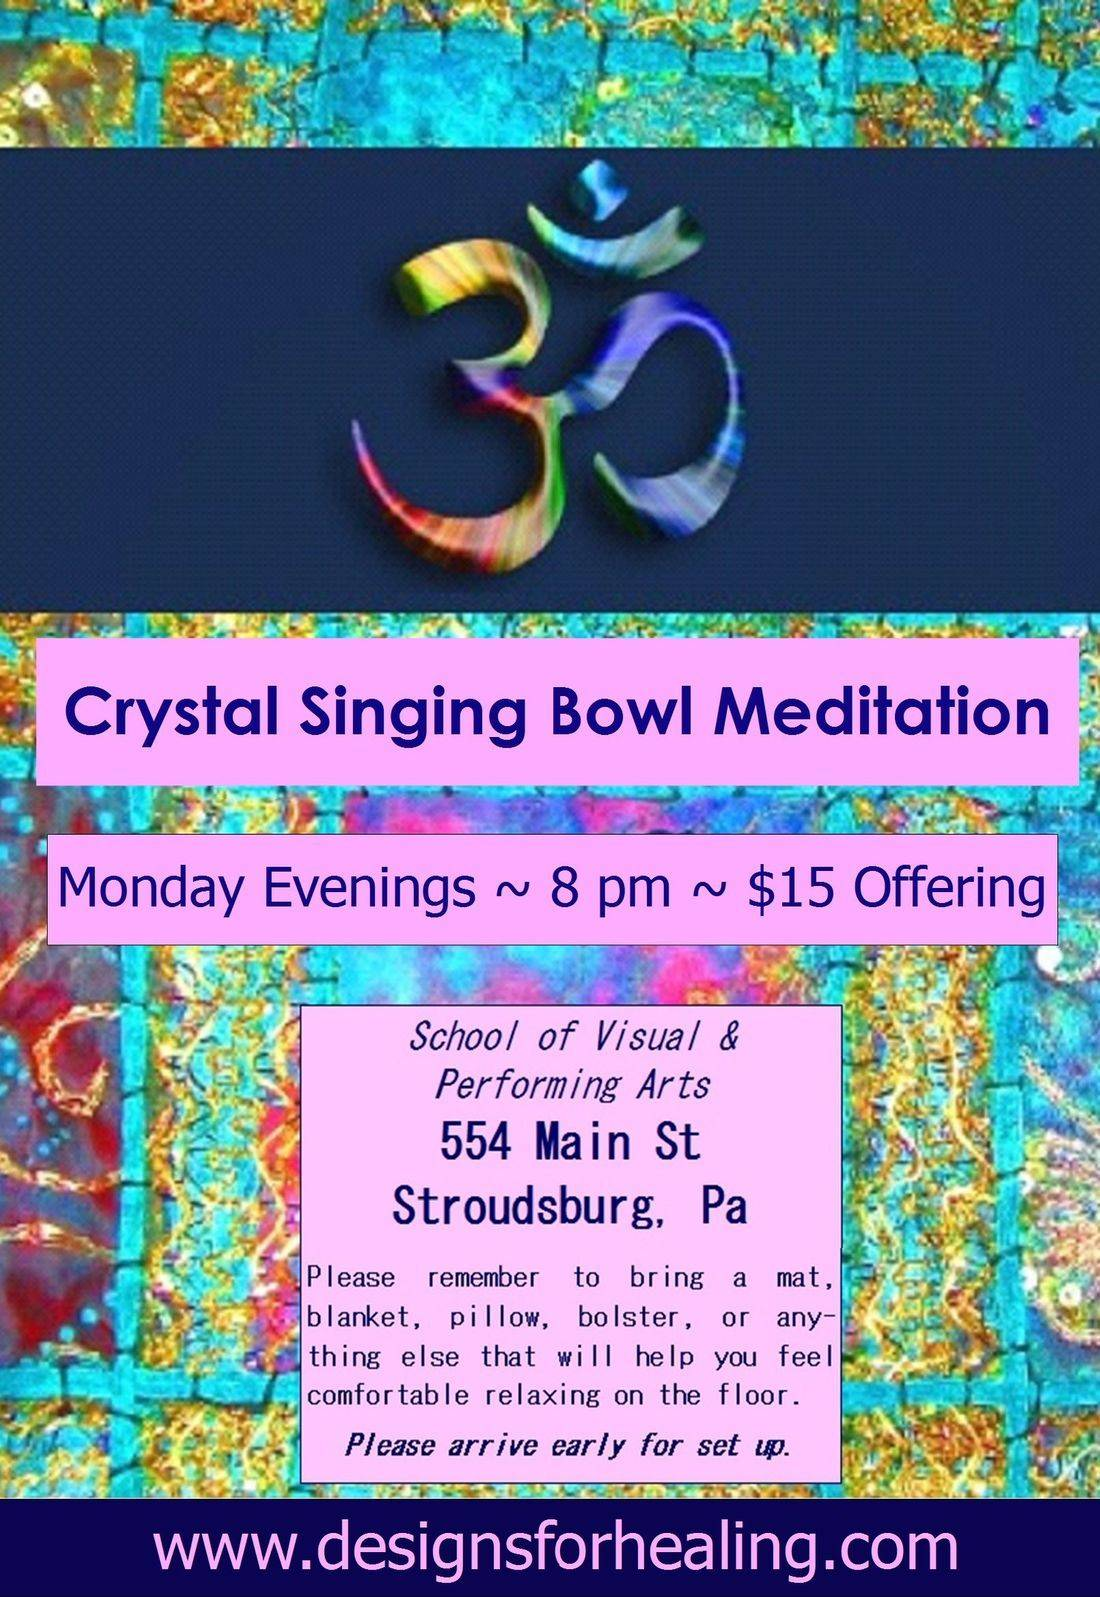 Designs for Health Bowl Meditation Crystal Stroudsburg Pensylvania